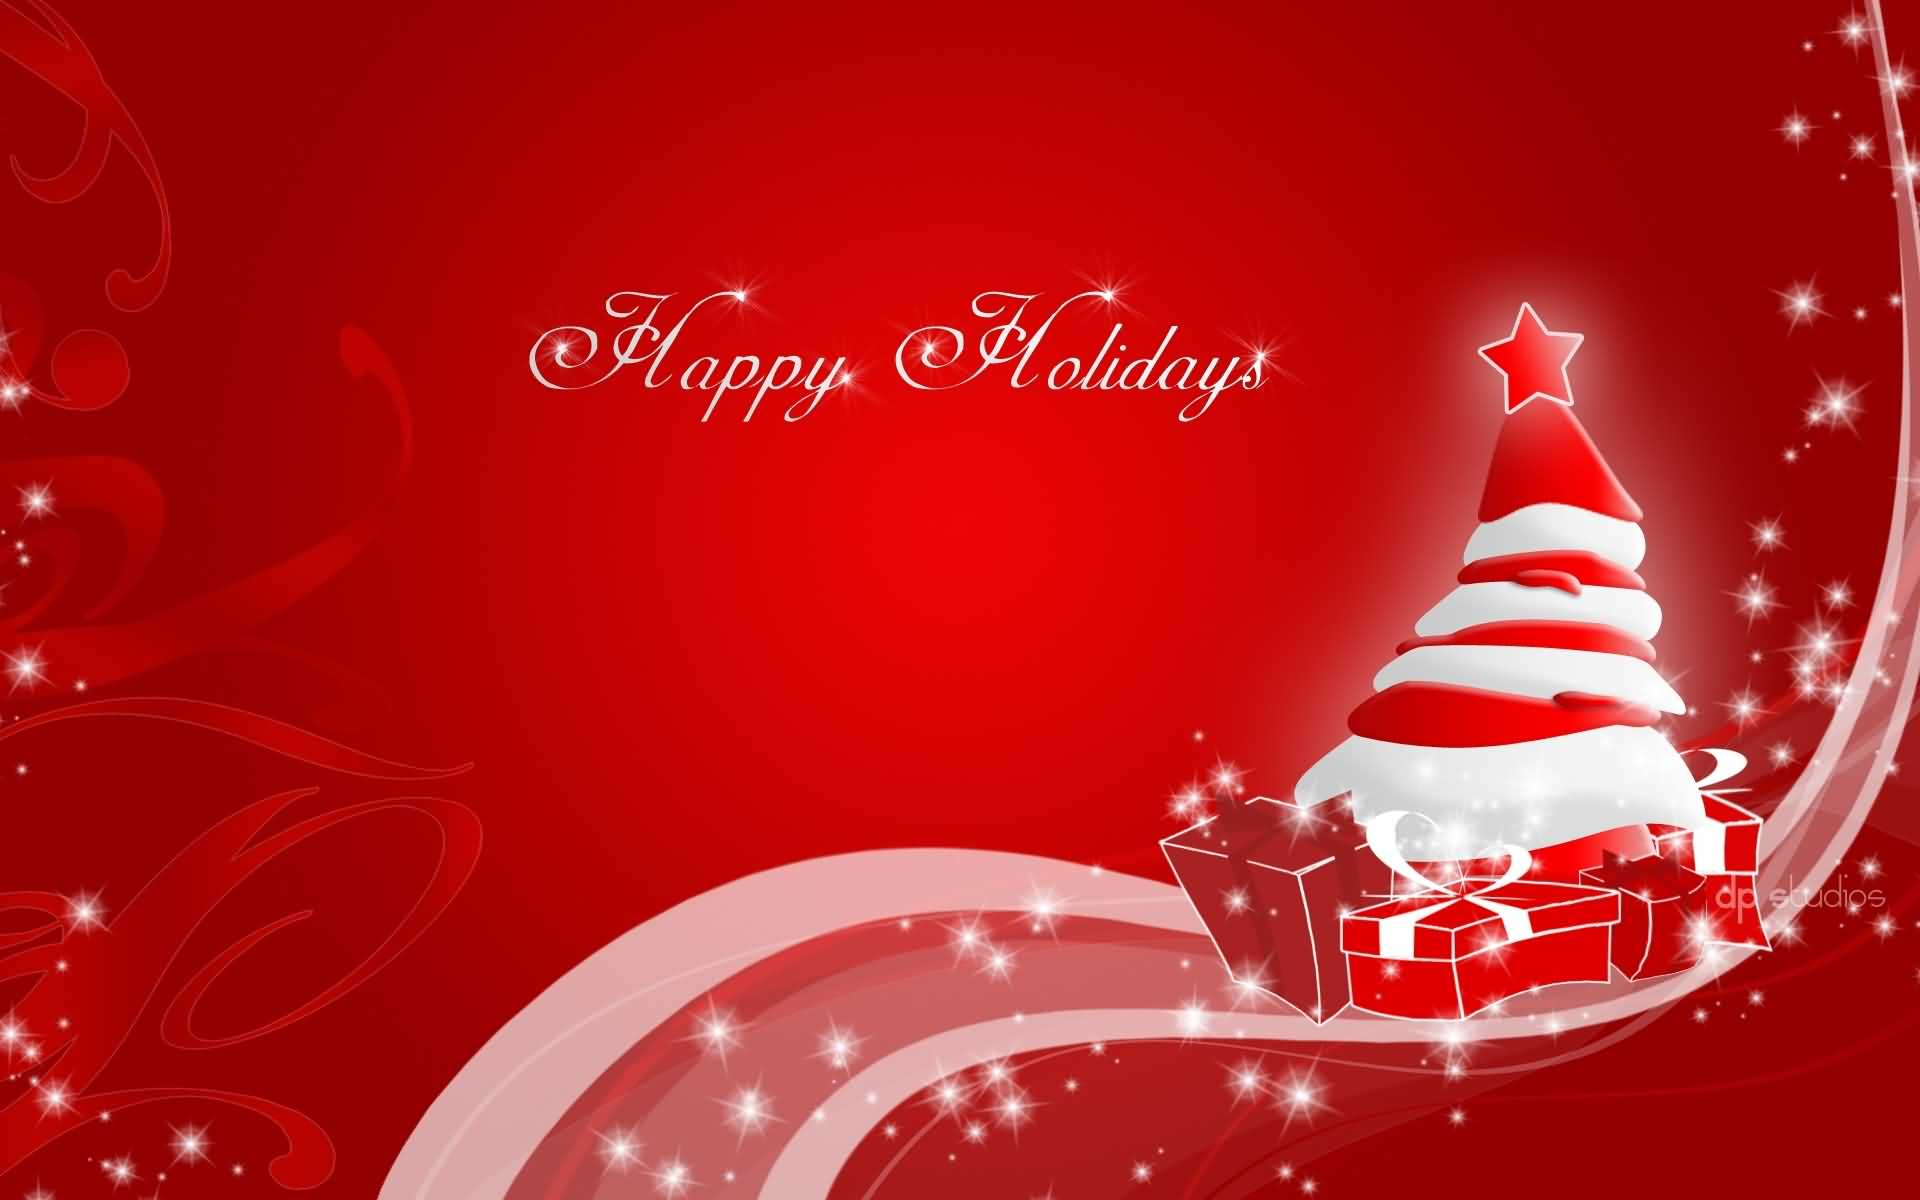 30 Best Happy Holidays Wallpapers